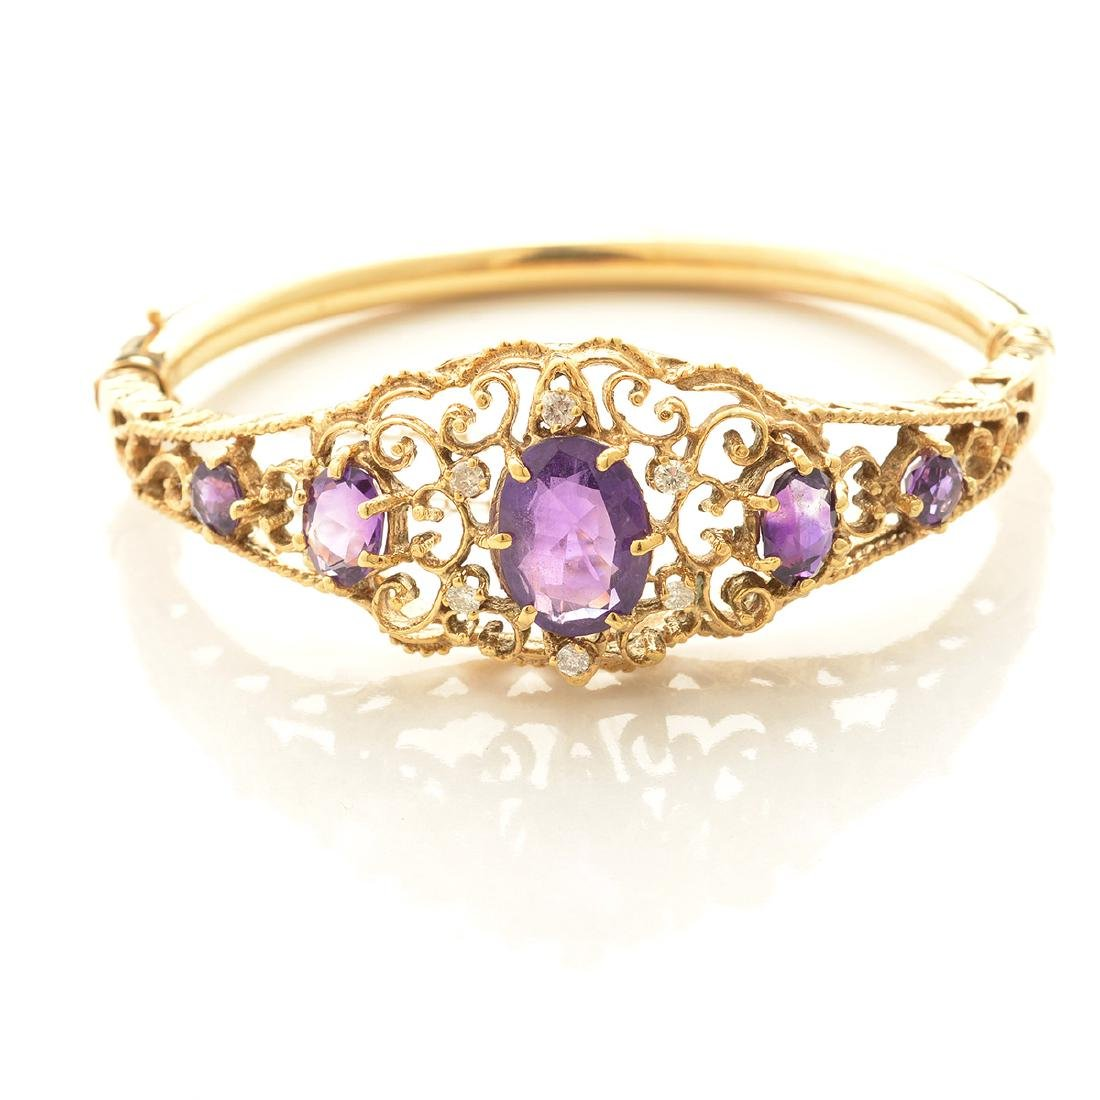 Amethyst, Diamond, 14k Yellow Gold Bracelet. - 2